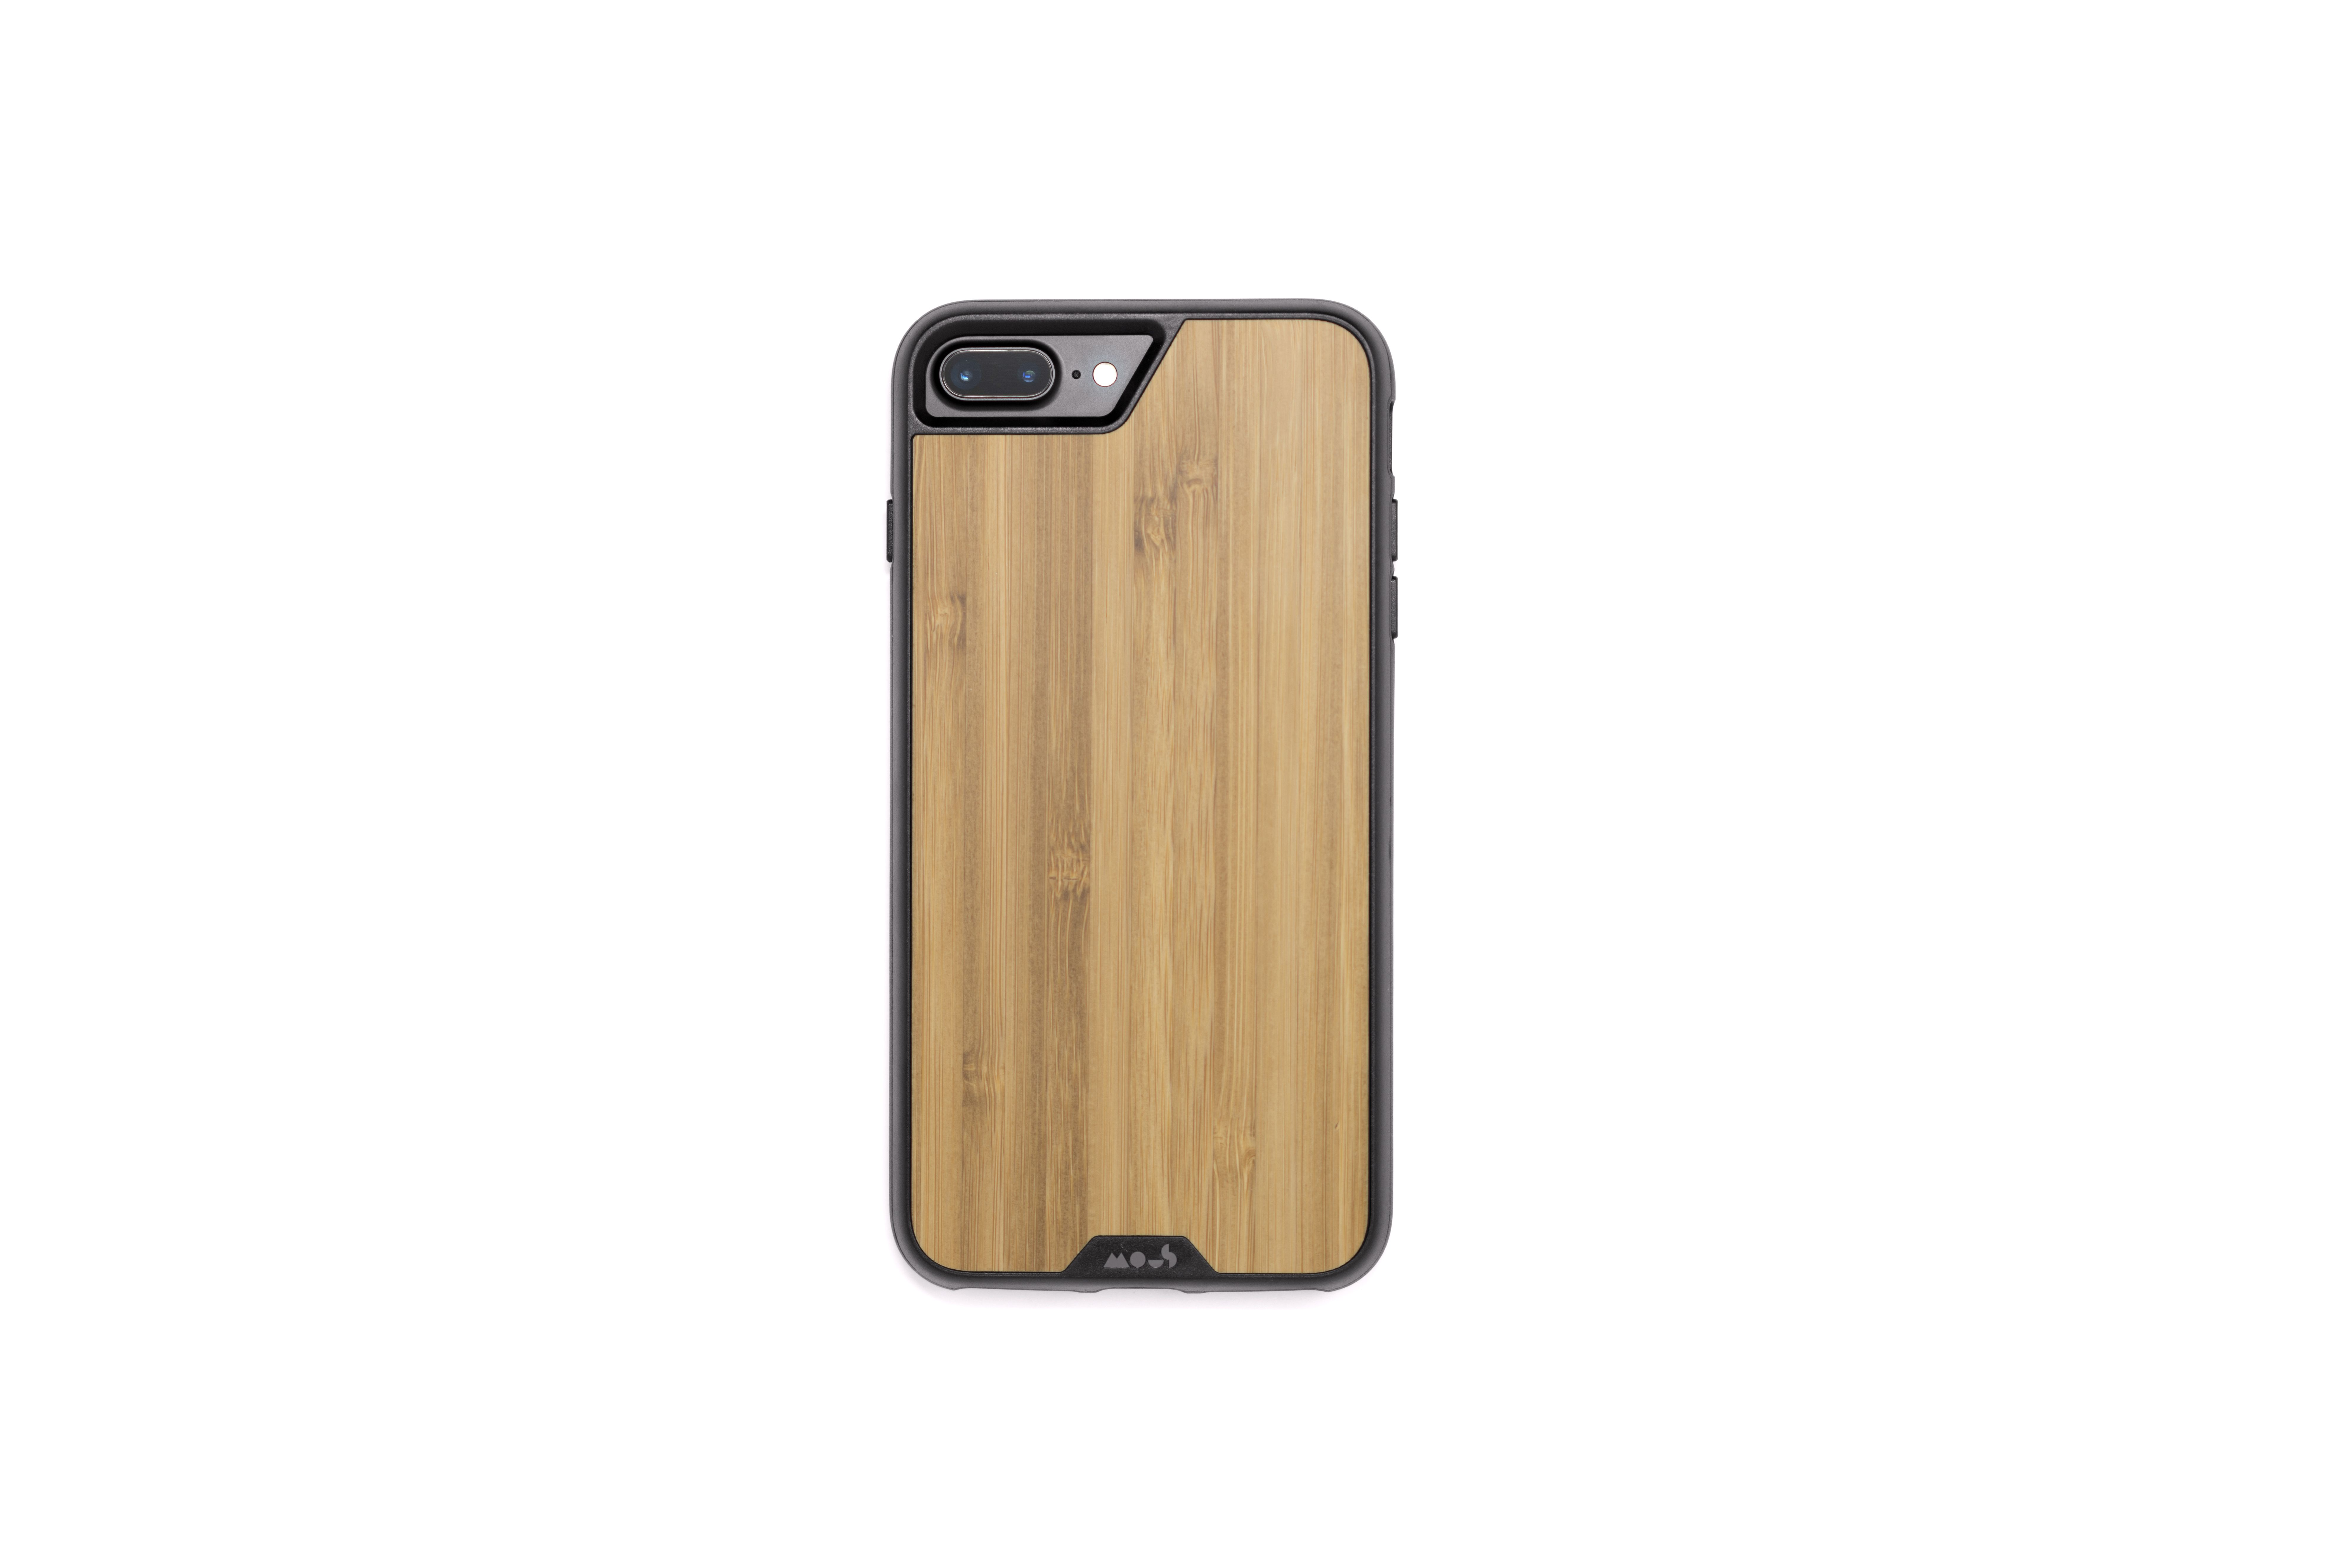 Mous - Protective Case for iPhone 8+/7+/6S+/6+ Plus - Limitless 2.0 - Bamboo - Screen Protector Included